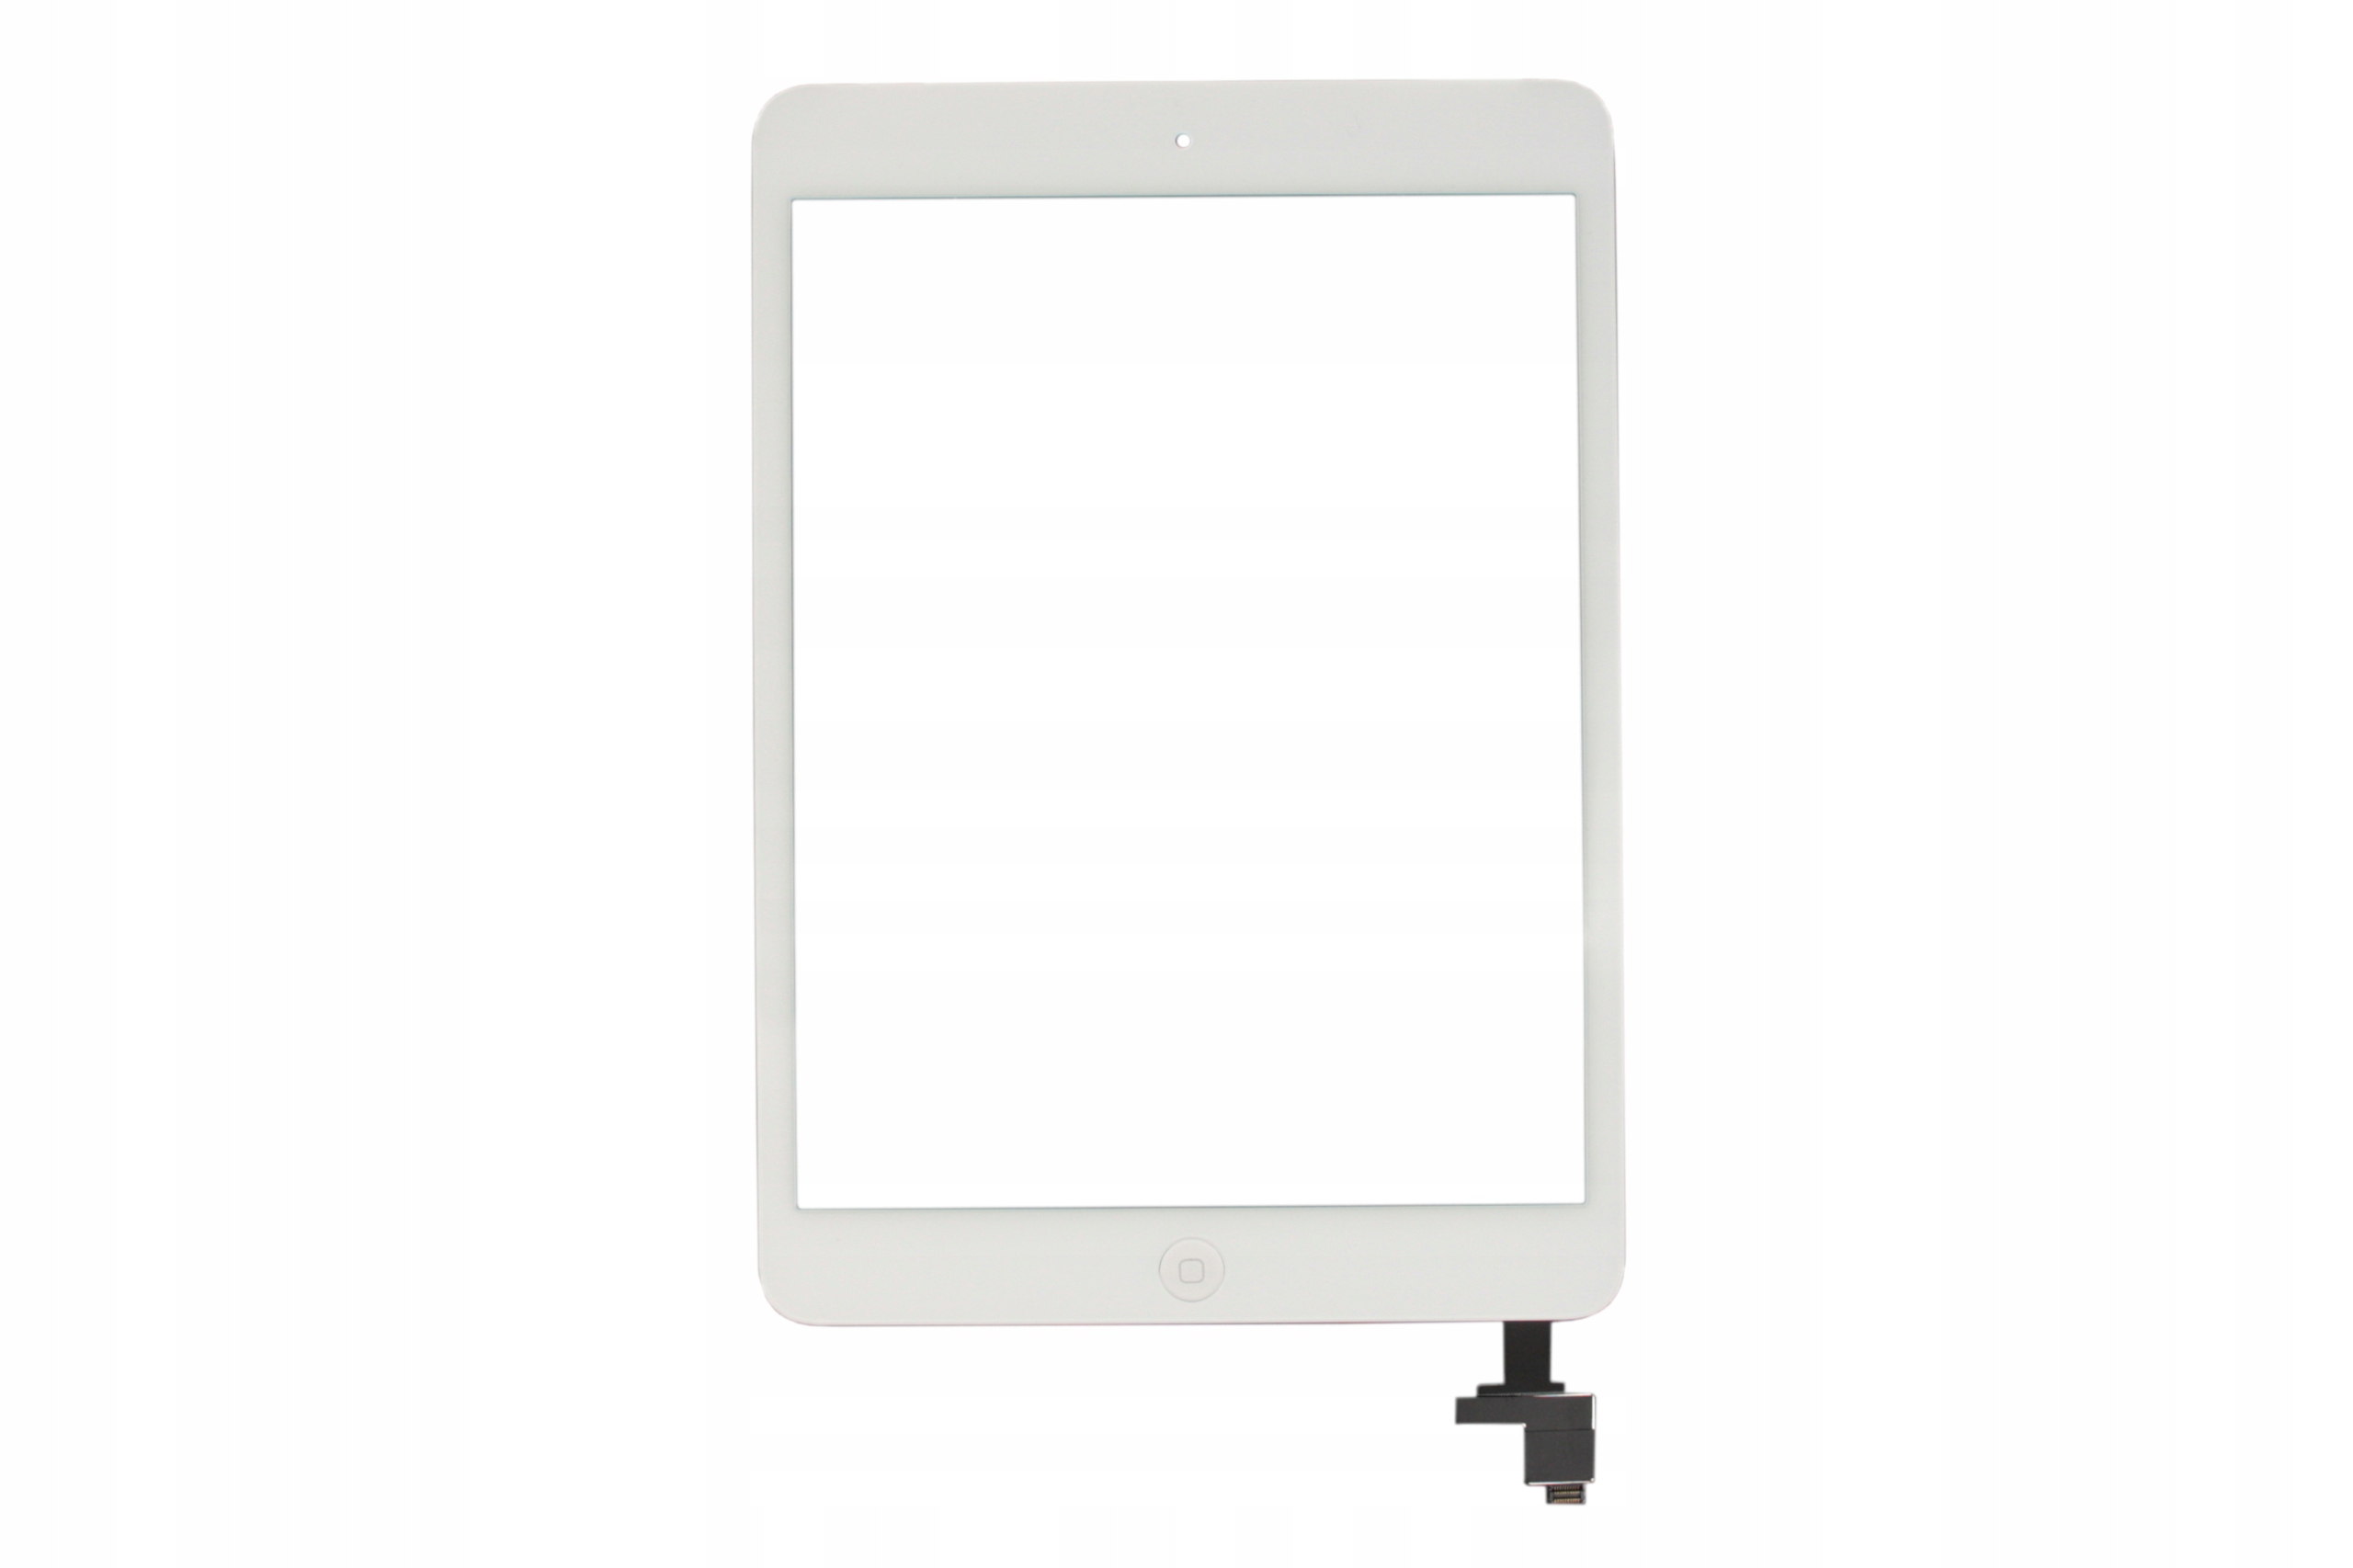 DIGITIZER APPLE IPAD MINI A1432 A1454 A1455 BIAŁY HOME UKŁAD IC KLEJ - Digitizery do tabletów